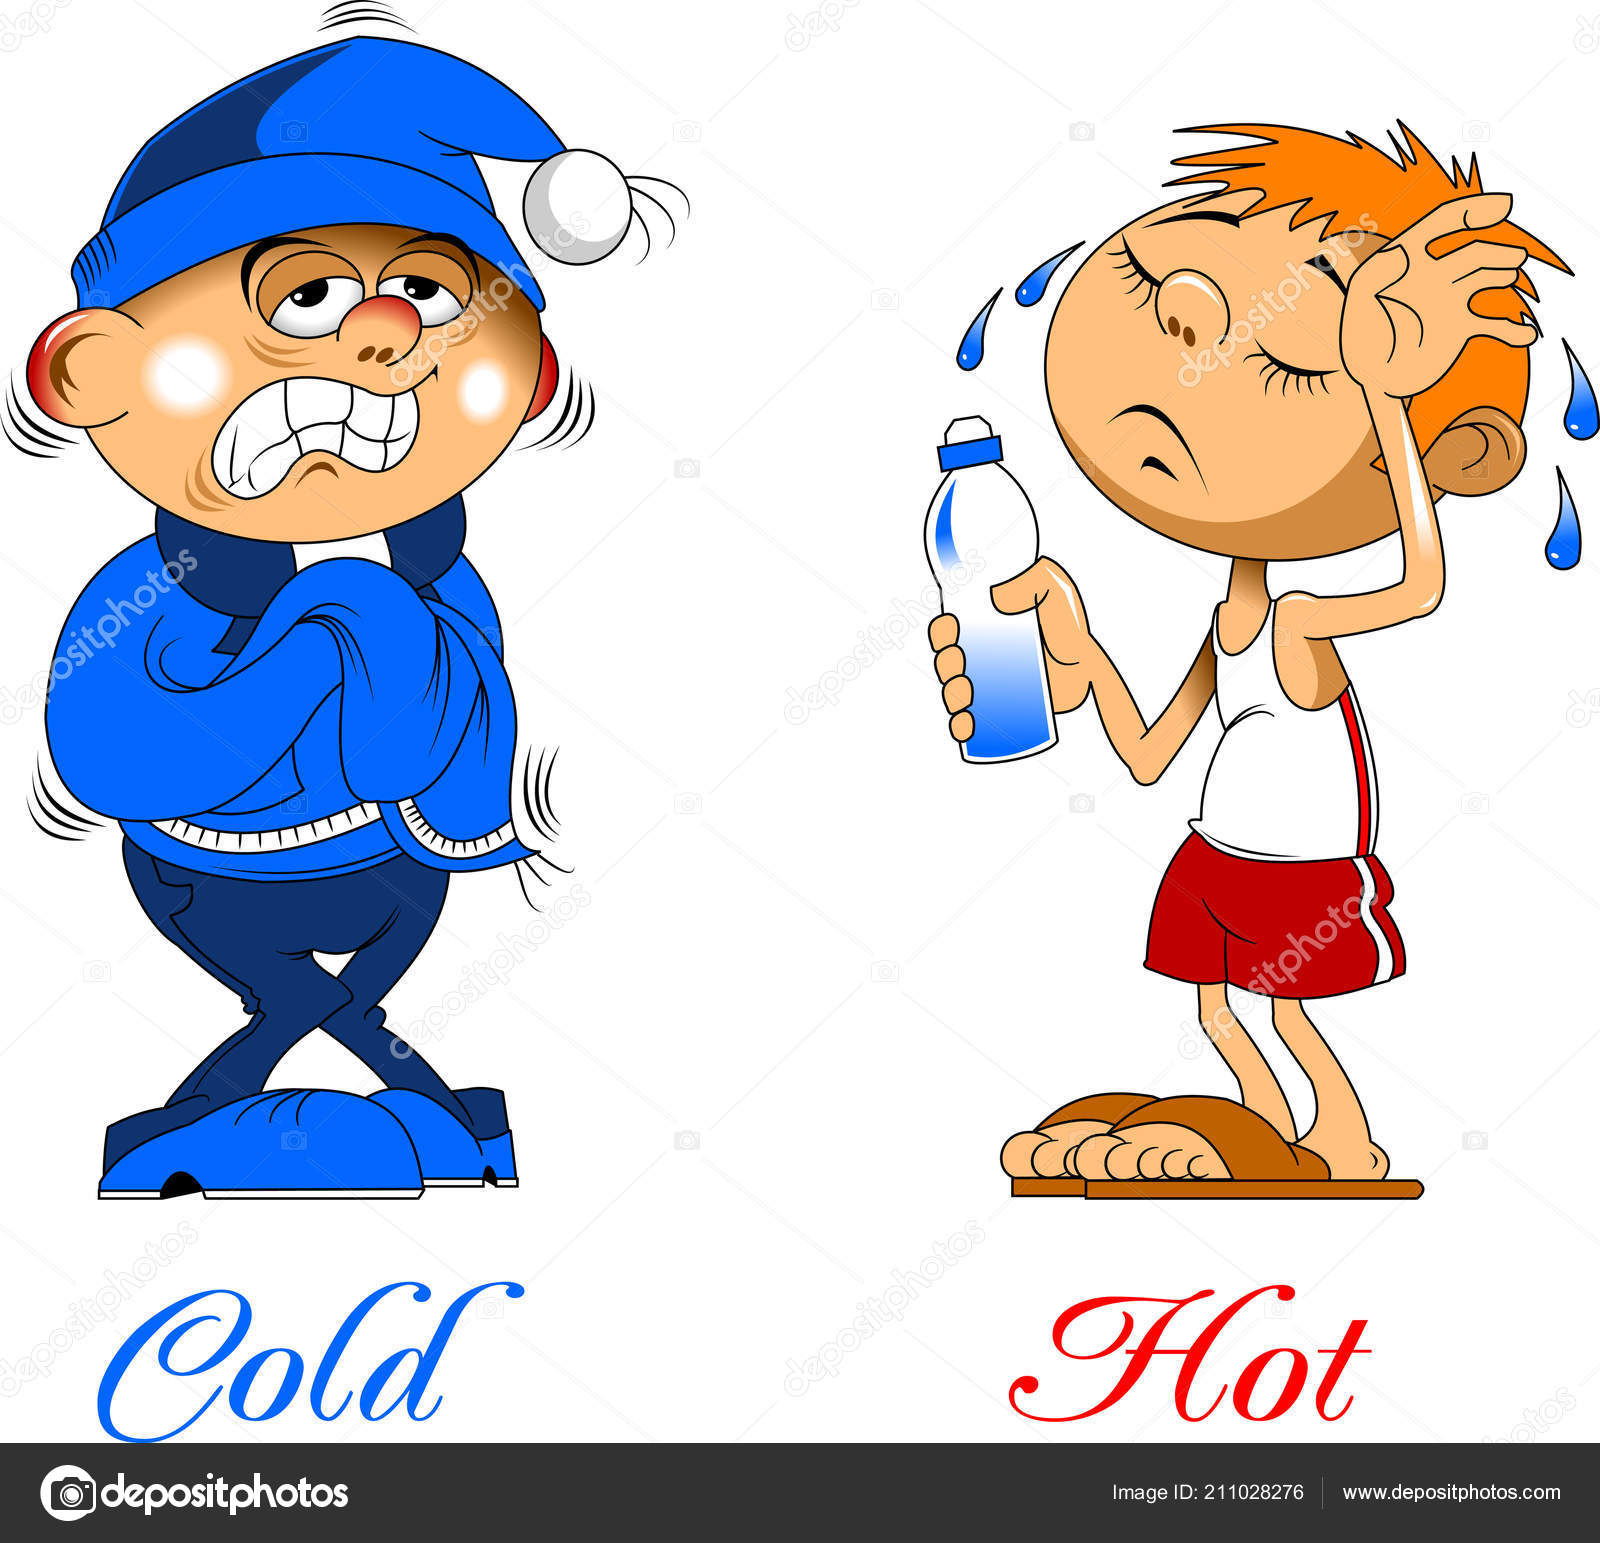 Clipart: hot and cold.